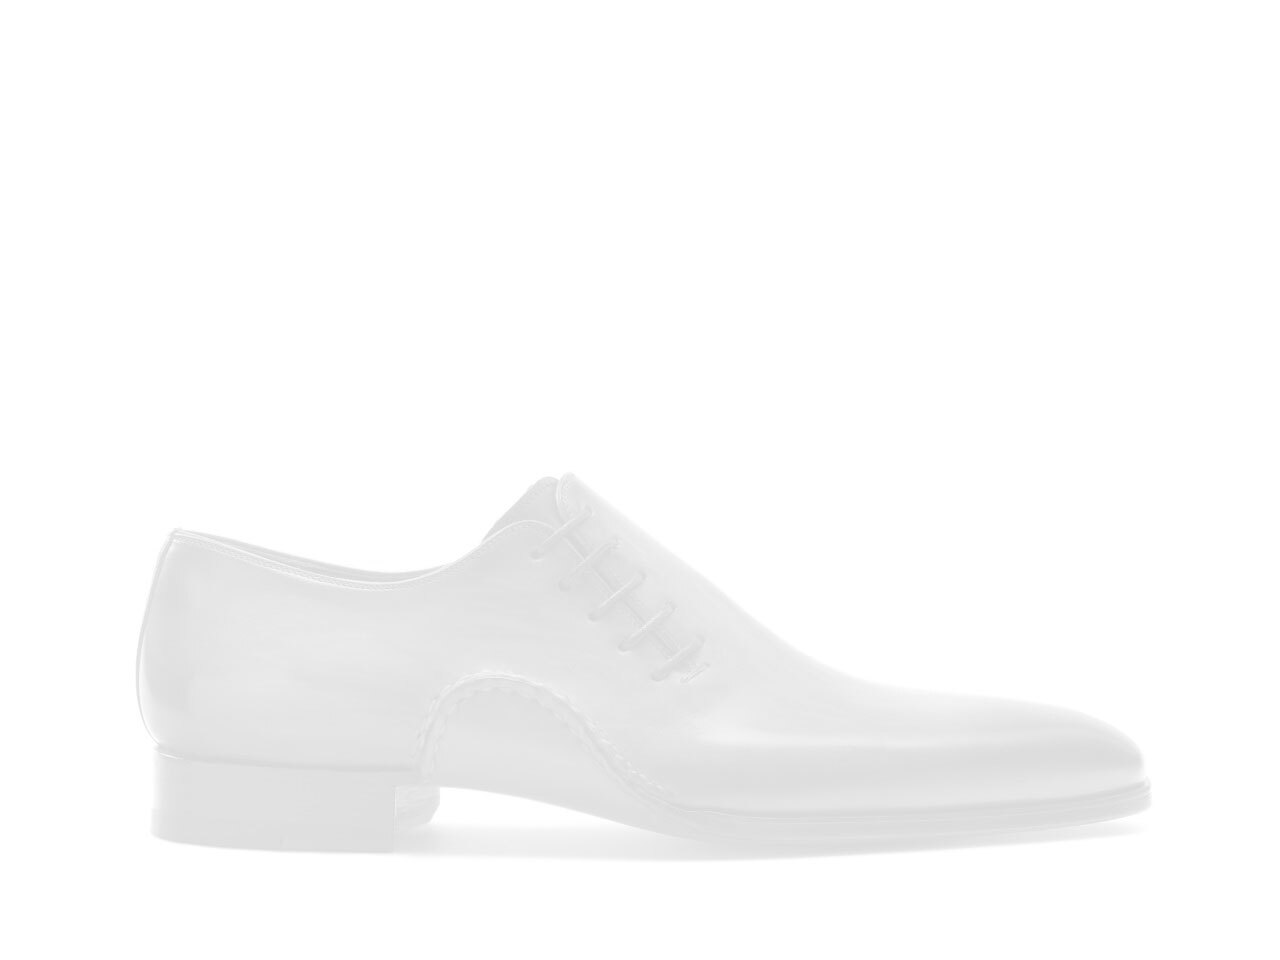 Side view of the Magnanni Nerja White and Cuero Men's Sneakers